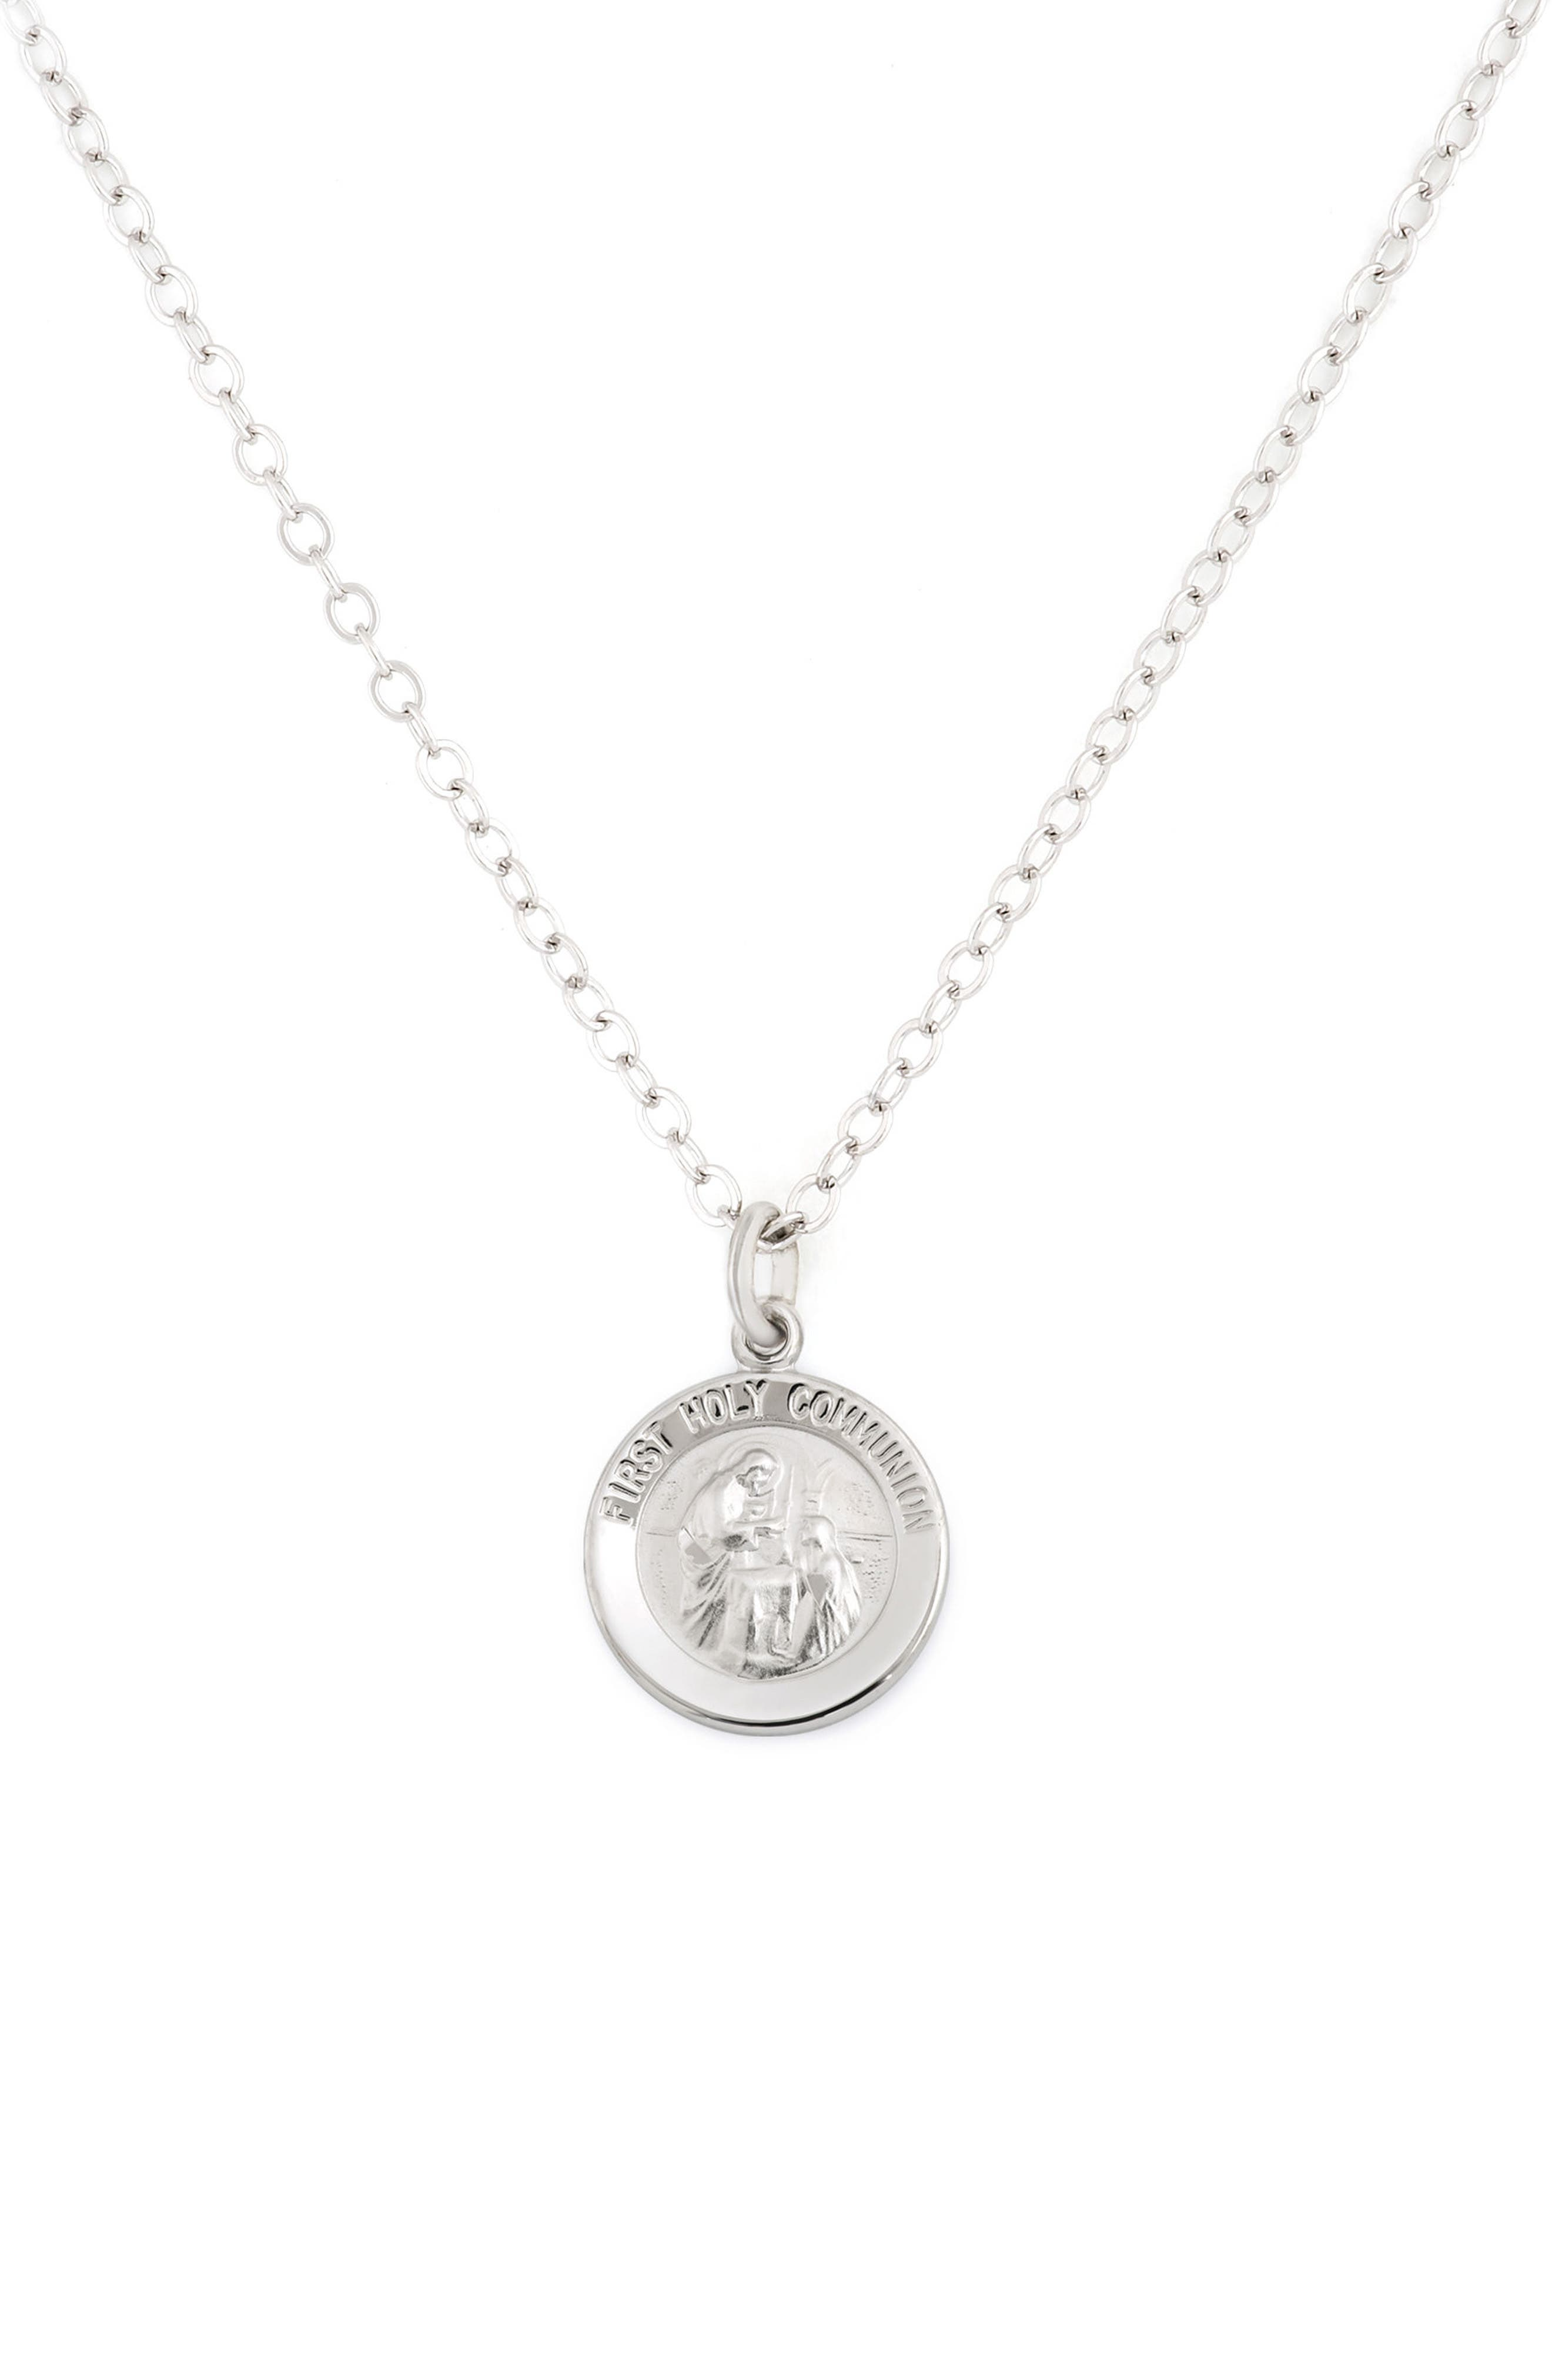 Alternate Image 1 Selected - Speidel First Communion Pendant Necklace (Girls)